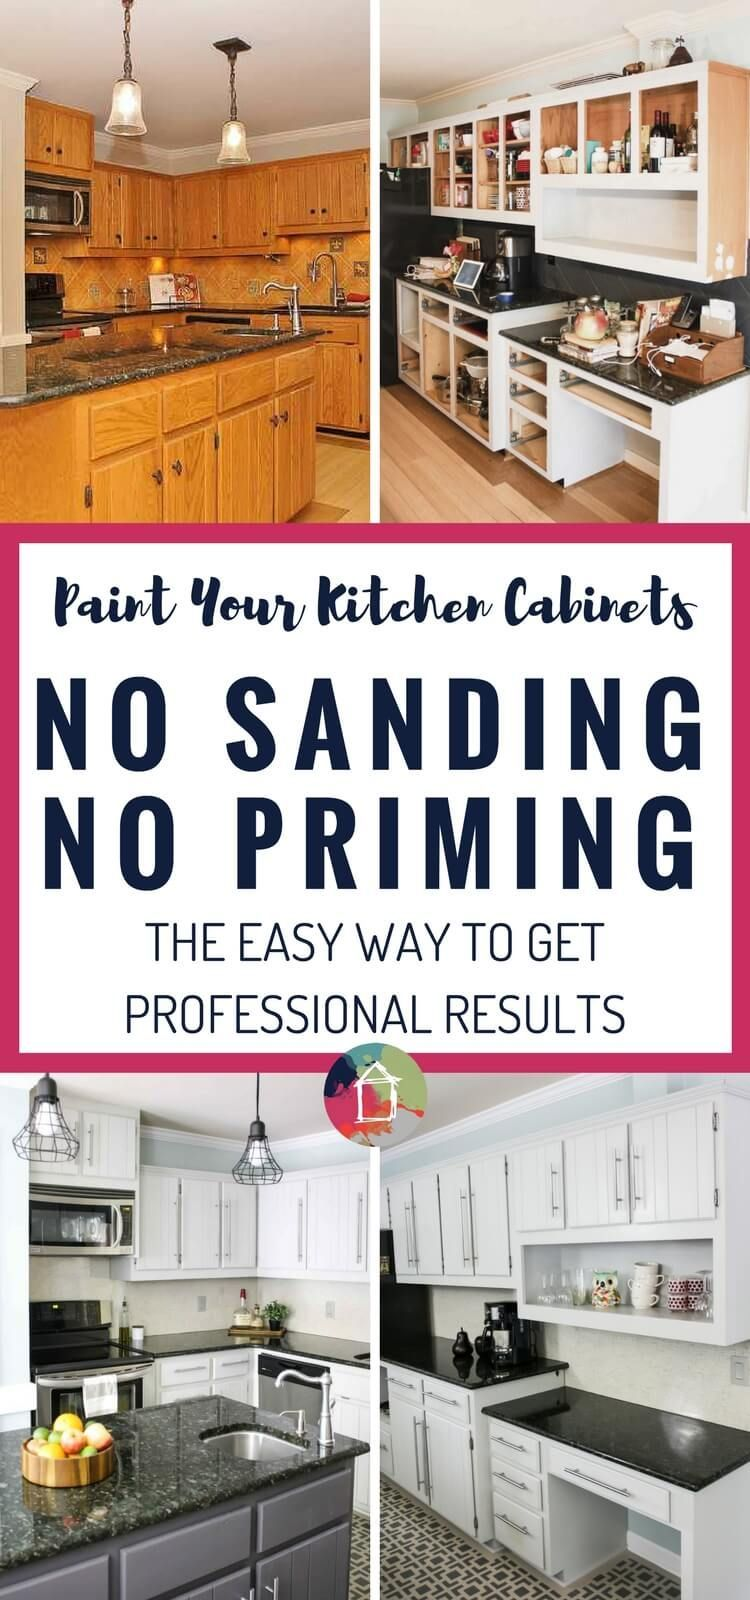 How To Paint Kitchen Cabinets Without Sanding Or Priming Step By Step Kitchen Cabinets Makeover Kitchen Diy Makeover Kitchen Cabinets